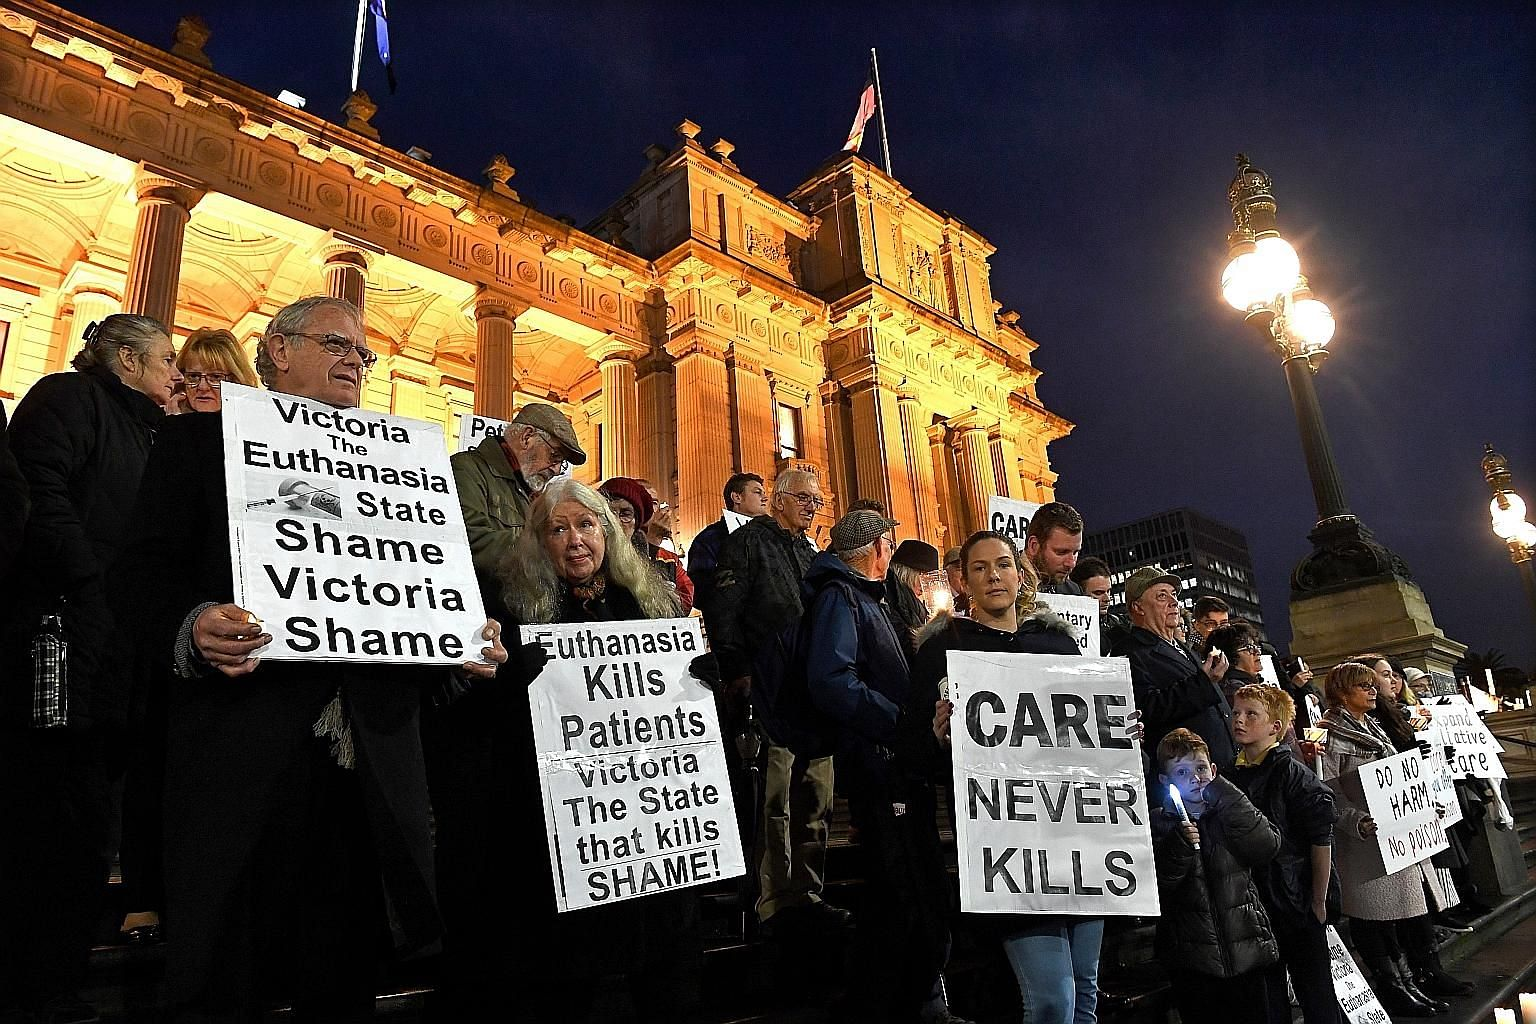 Pro-life demonstrators outside Victoria's state Parliament in Melbourne last Tuesday, ahead of the voluntary assisted dying laws coming into effect the next day.